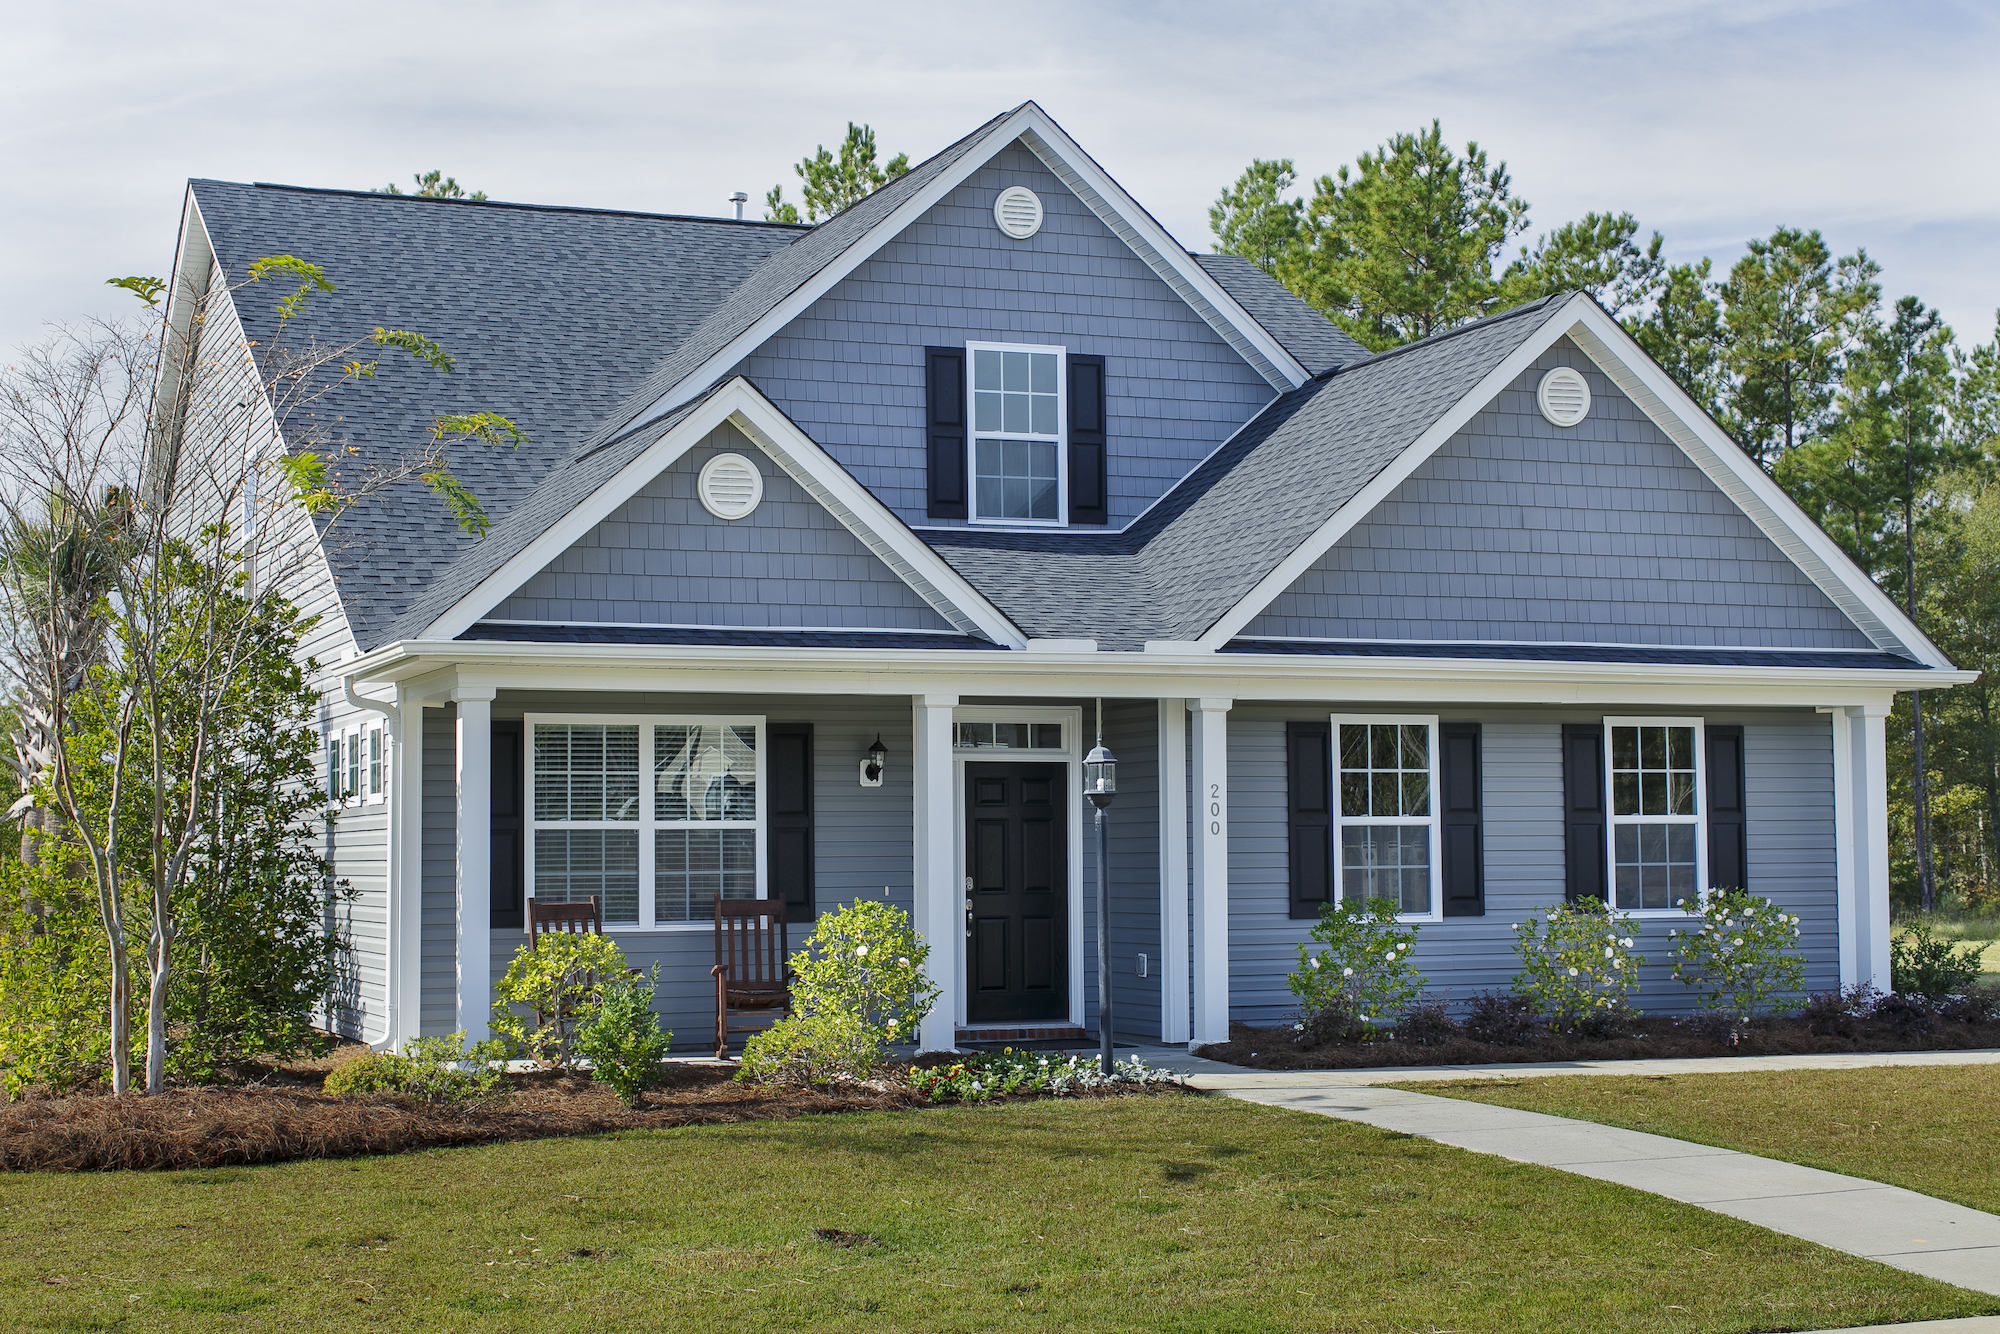 Crescent Homes Foxbank for Arbor Woods 2